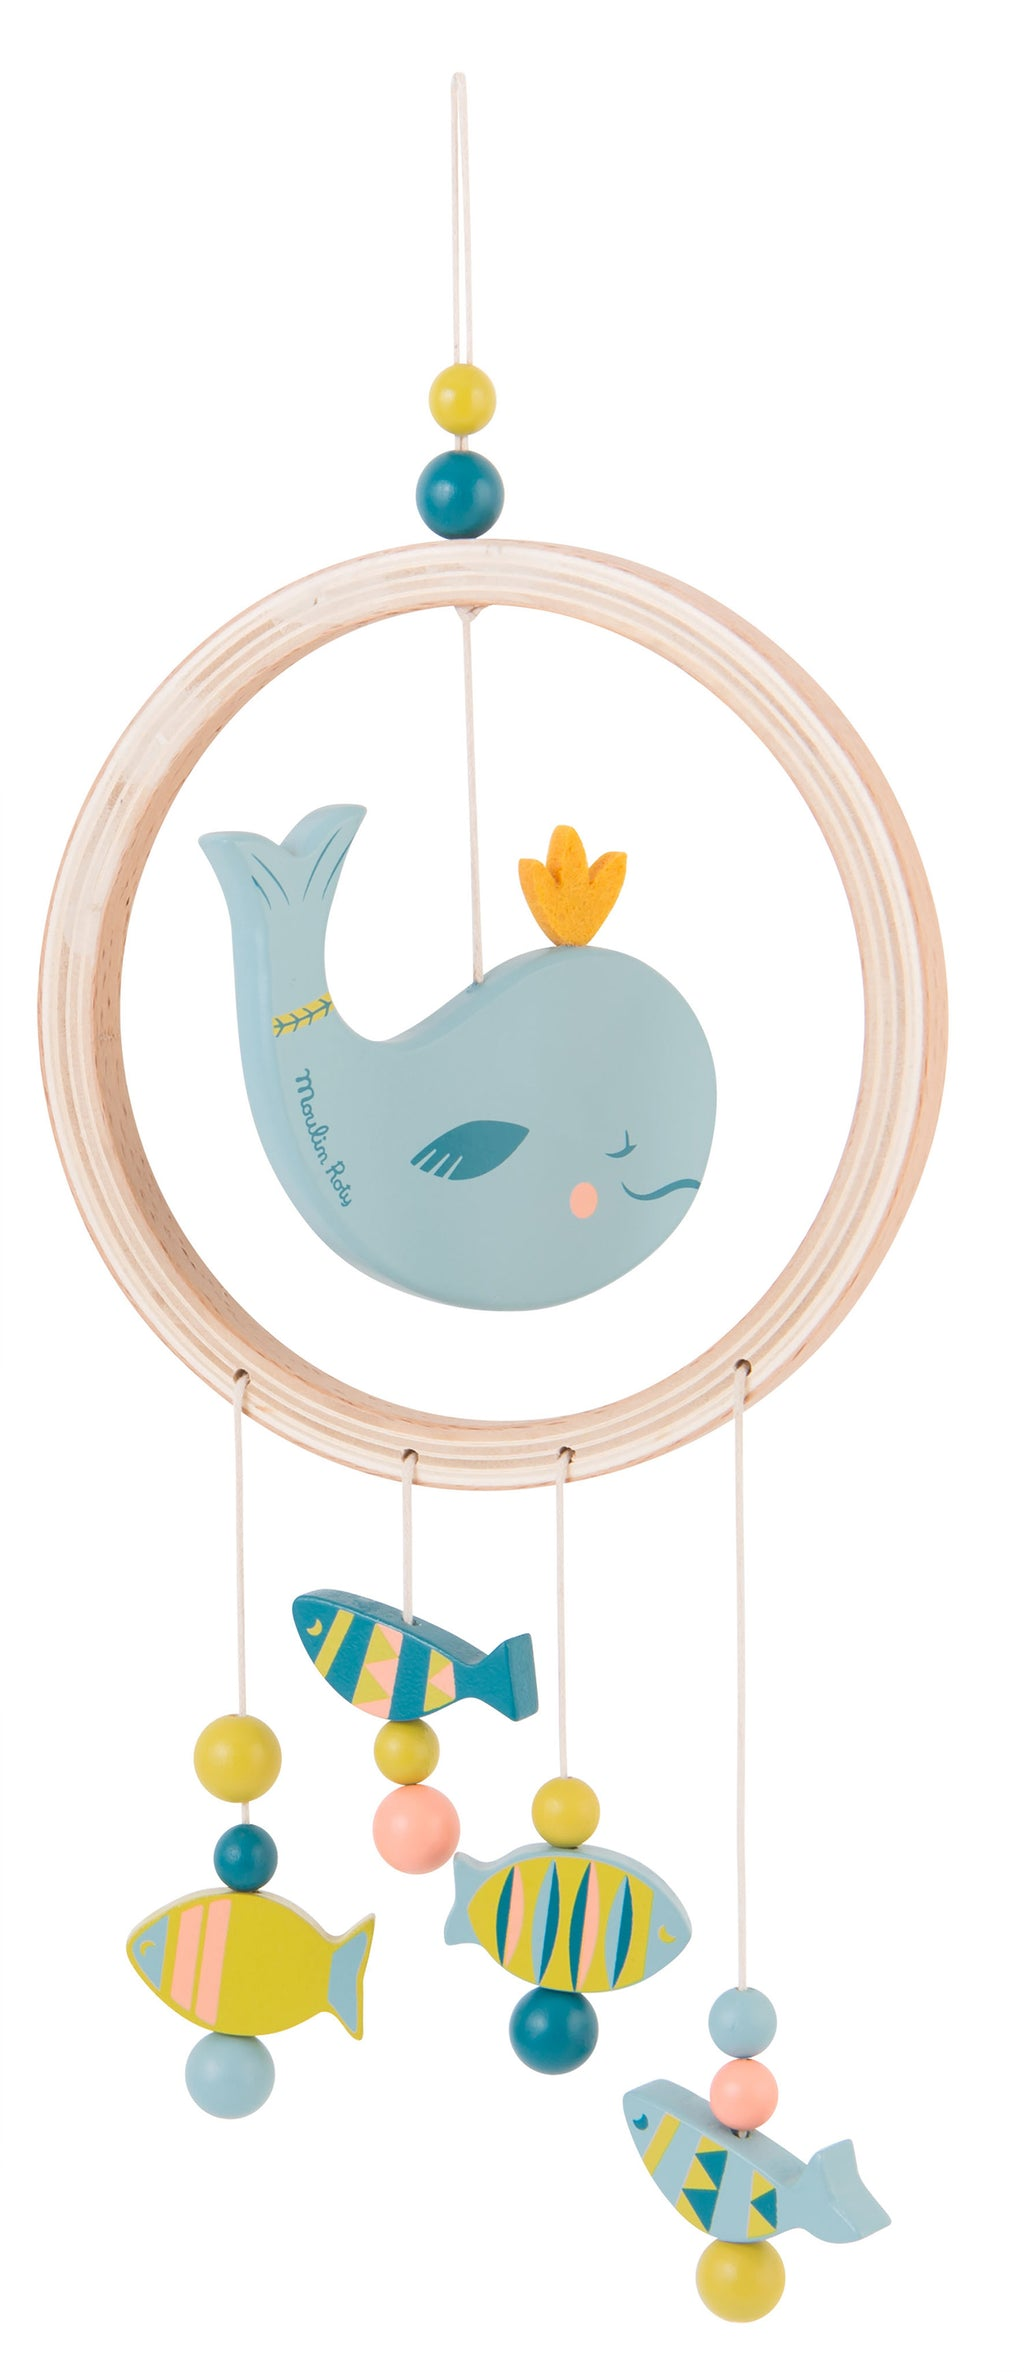 This wooden dream catcher features a beautiful whale in the middle of a circle decorated with blue, yellow and pink beads and felt features.